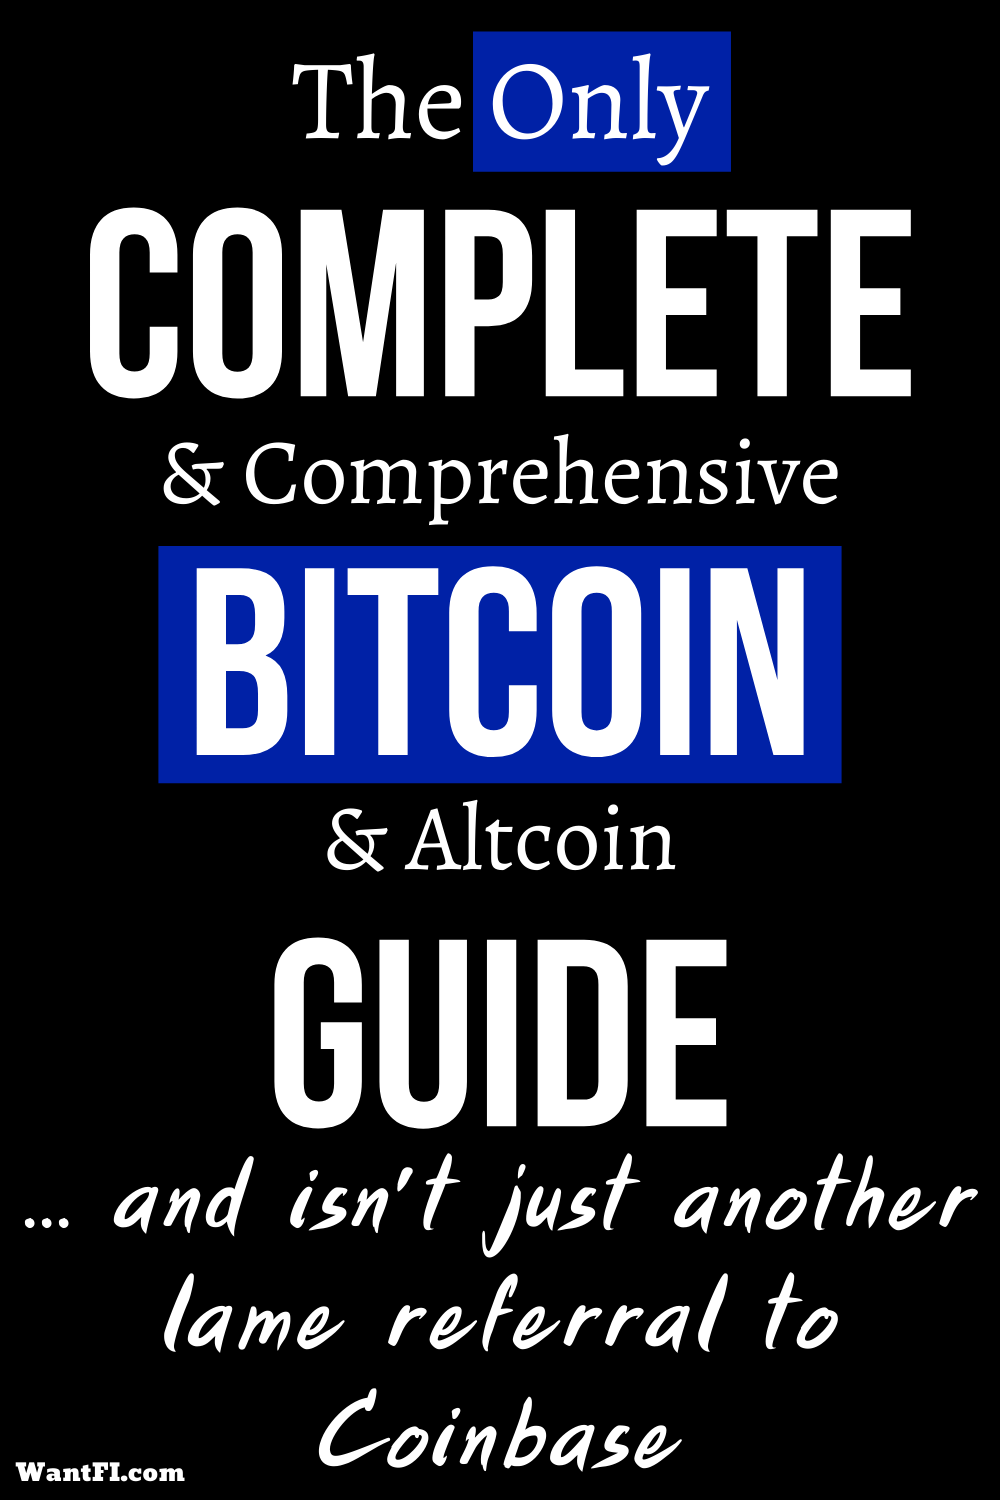 The Ultimate Bitcoin Guide That Covers Cryptocurrency Investing, Trading, Mining, Storing BTC XRP